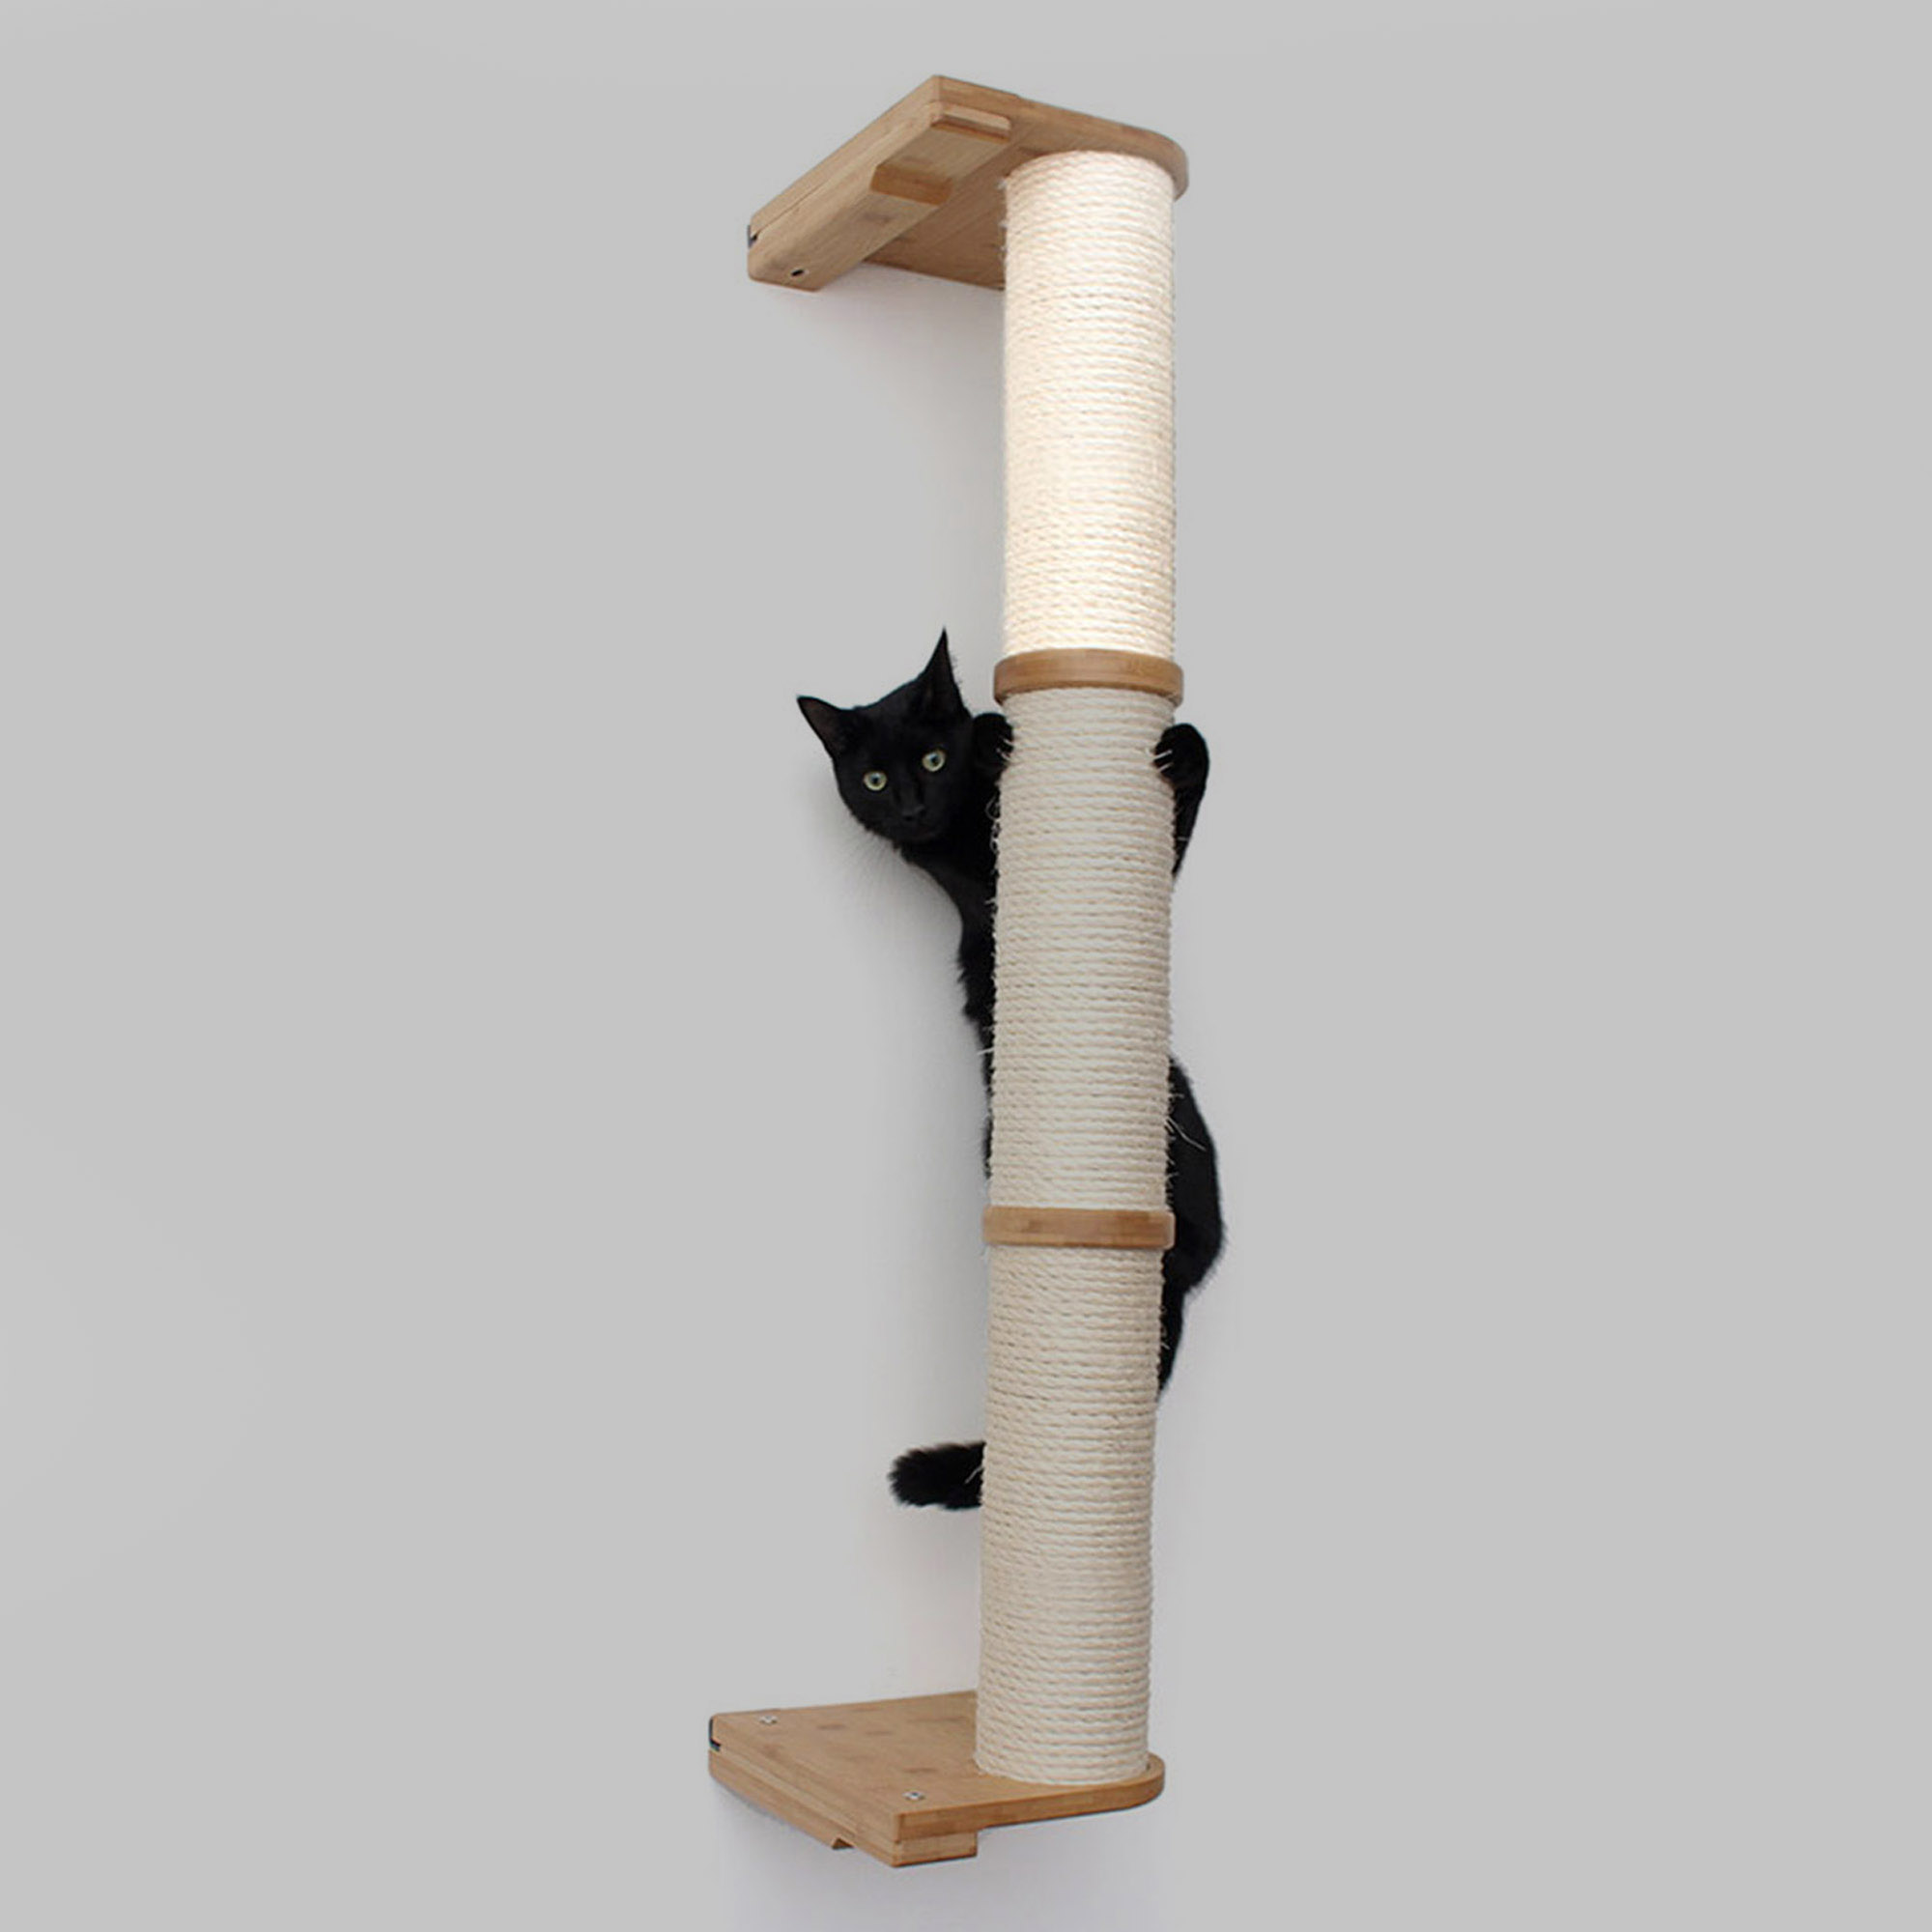 This image displays a cat climbing the three tier Sisal Pole, with one Sisal Pole segment highlighted. The Sisal Pole segment can be used to replace an old one, or to add height to your current Sisal Pole.